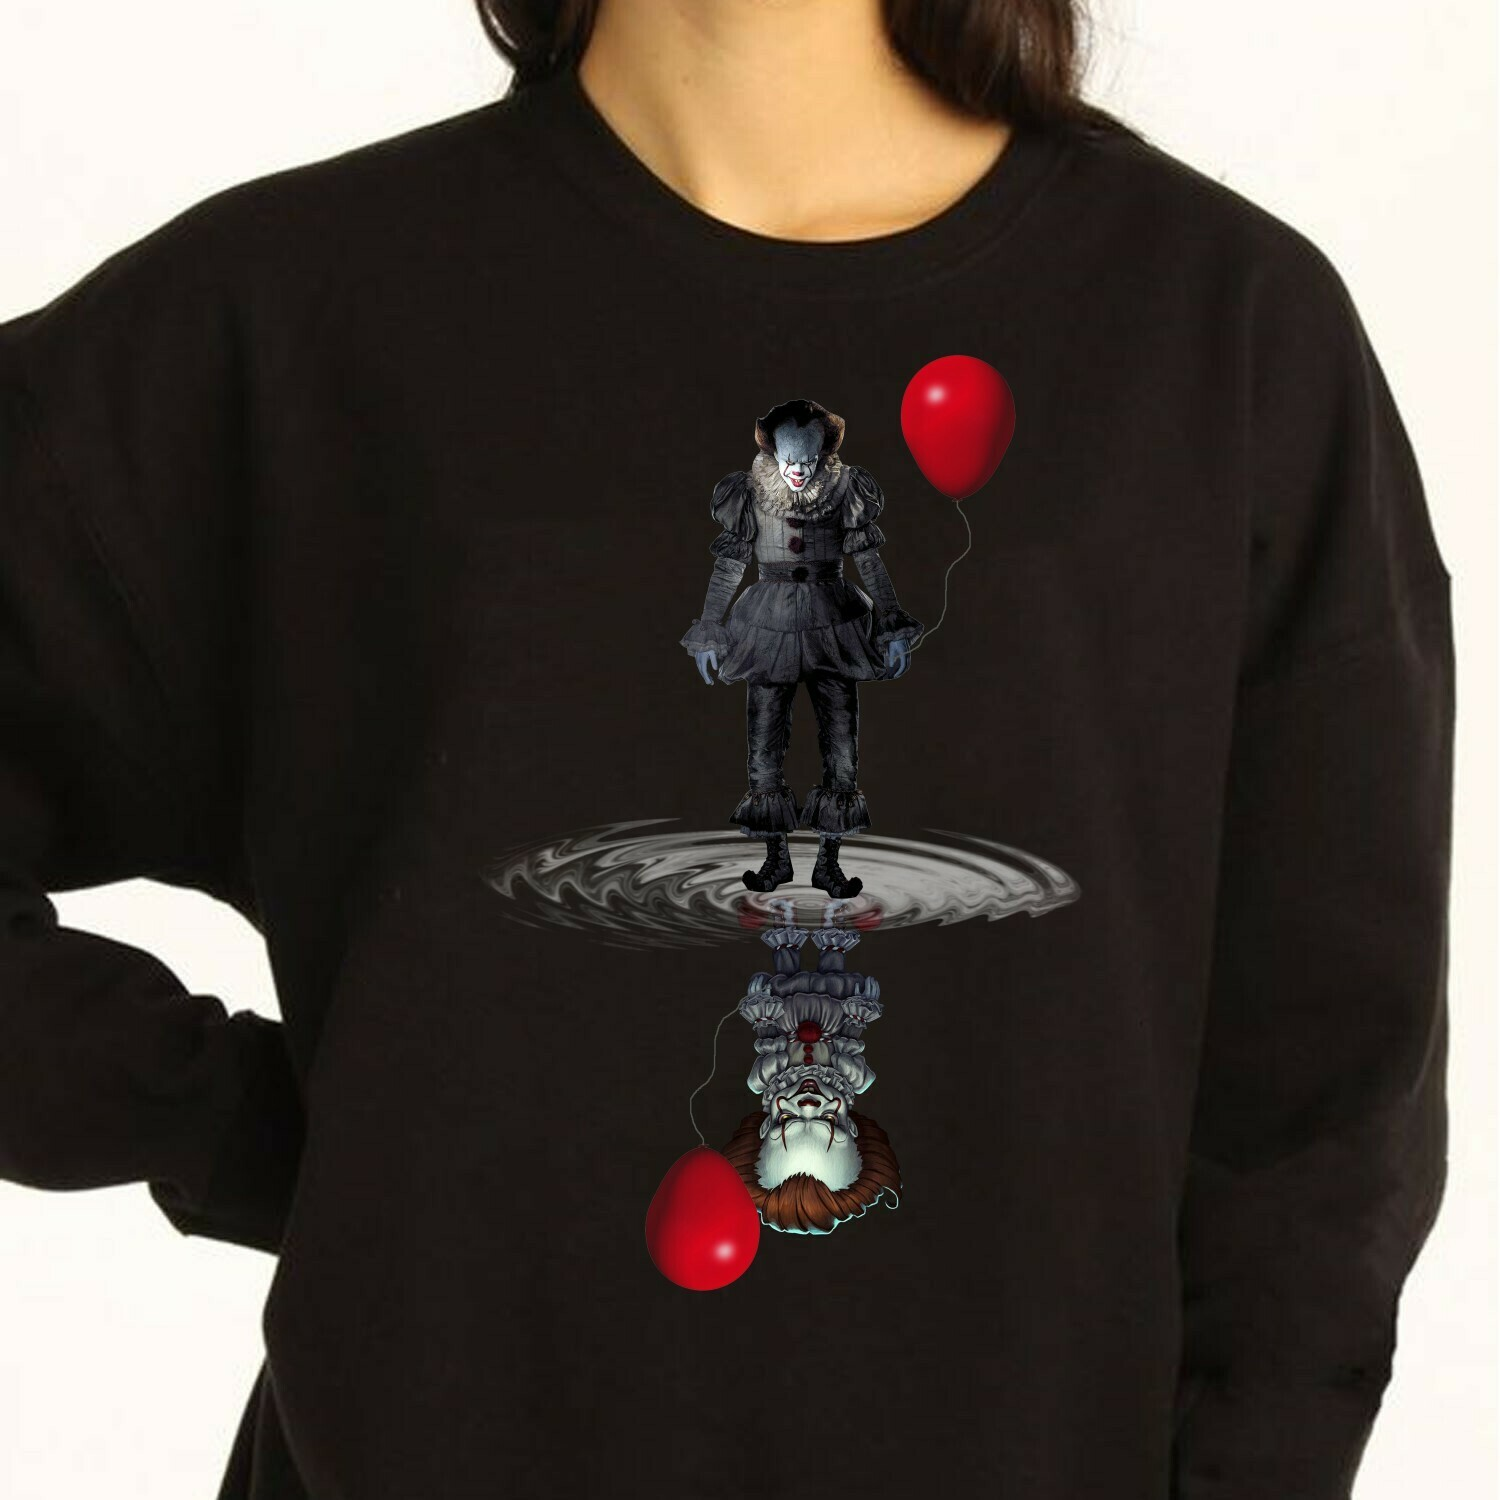 Horror IT Joker Pennywise 2019 We All Float Down Here Reflection Chibi Horror Spooky Clown Villains Halloween Movie Mashup Gifts T-Shirt Long Sleeve Sweatshirt Hoodie Jolly Family Gifts